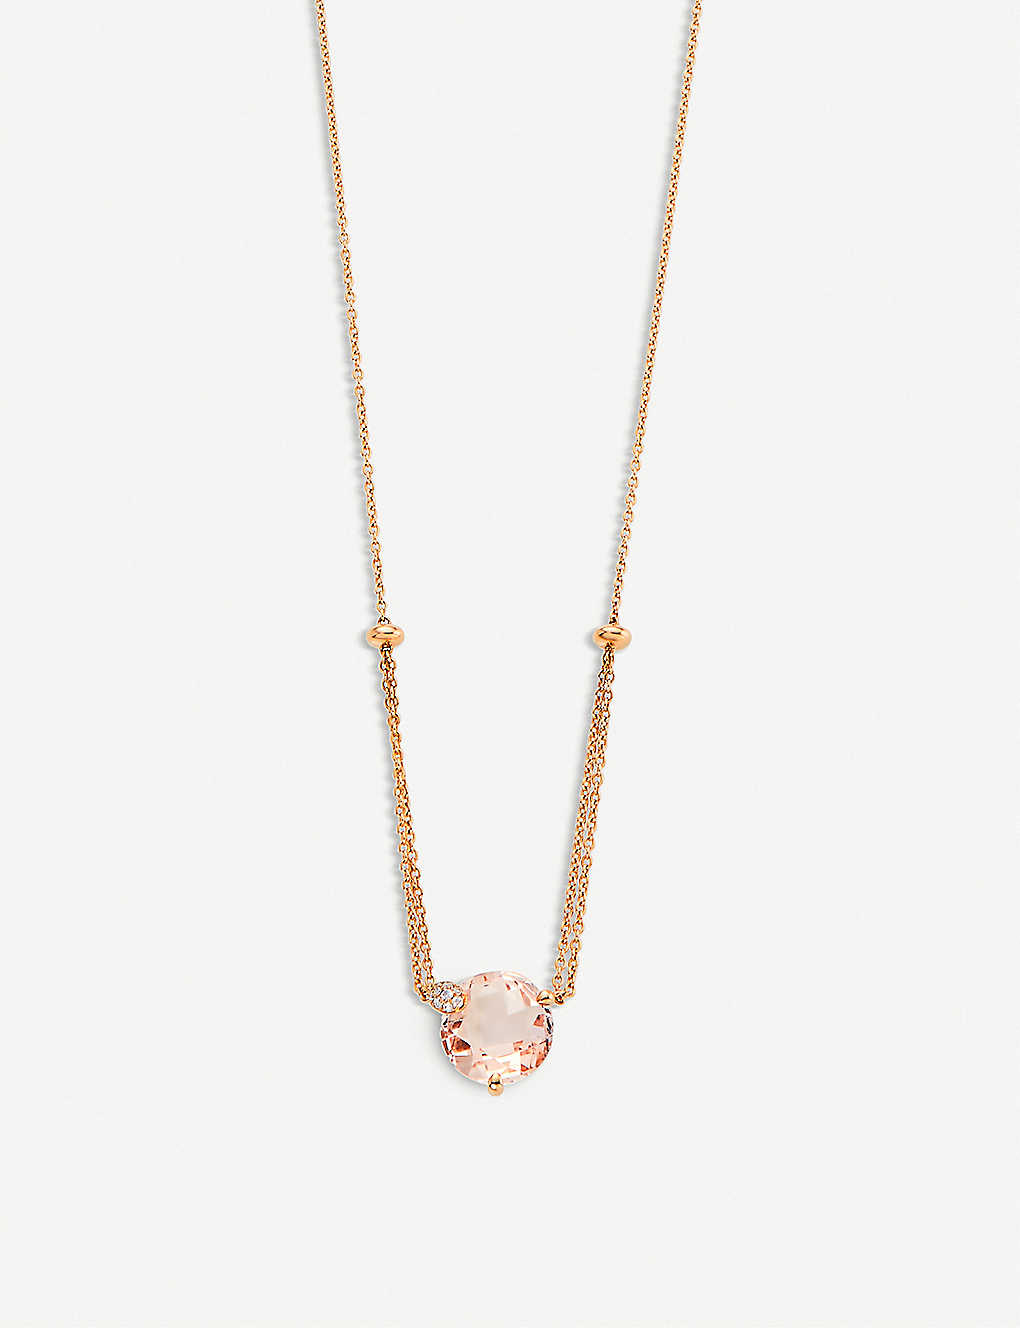 BUCHERER FINE JEWELLERY: Peekaboo 18ct rose-gold, morganit and diamond necklace